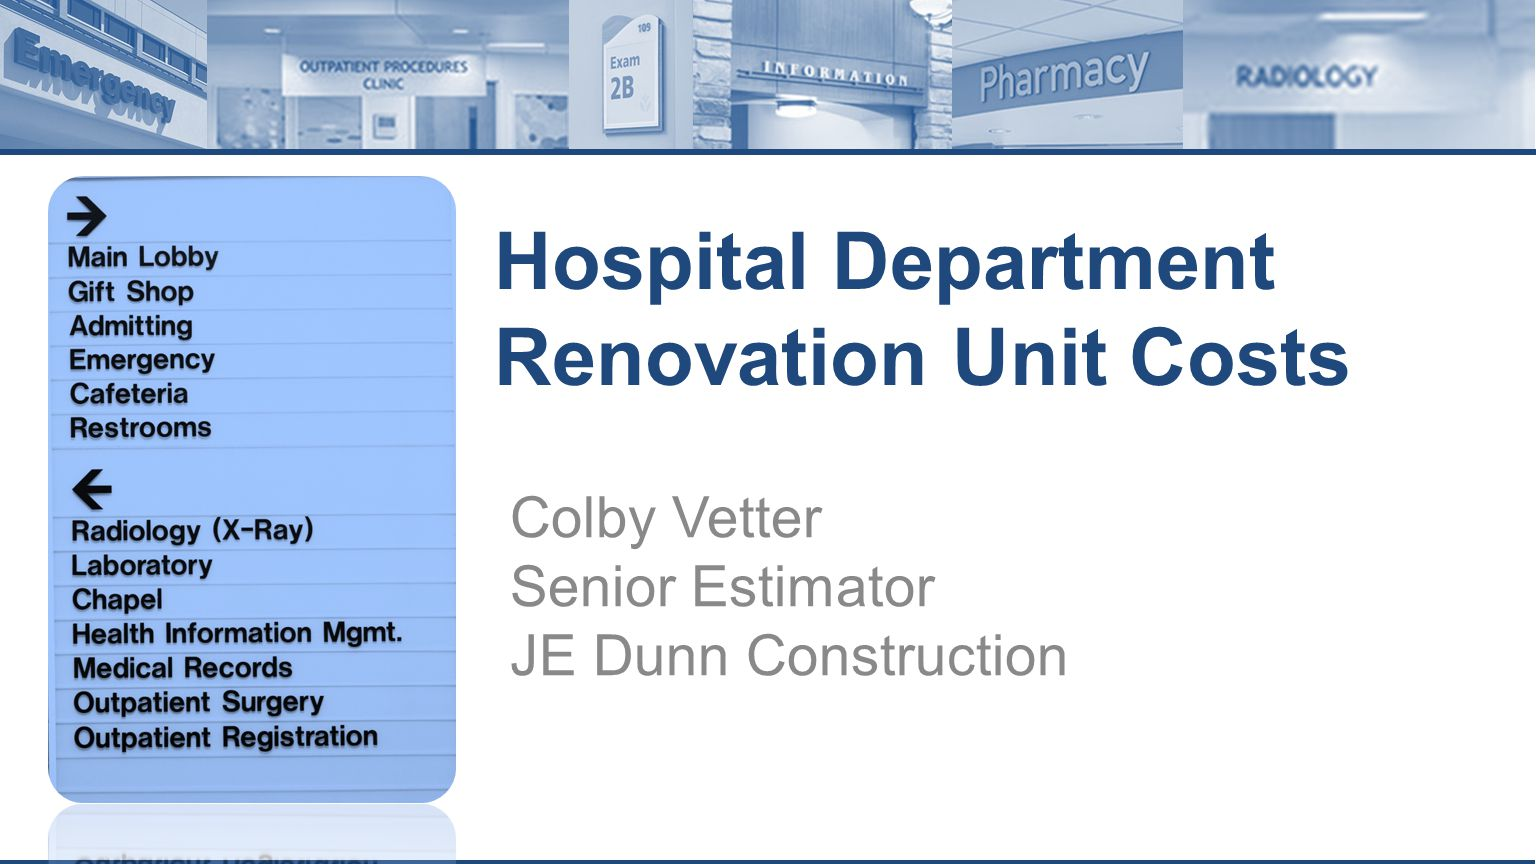 Hospital Department Renovation Unit Costs Colby Vetter Senior Estimator JE Dunn Construction